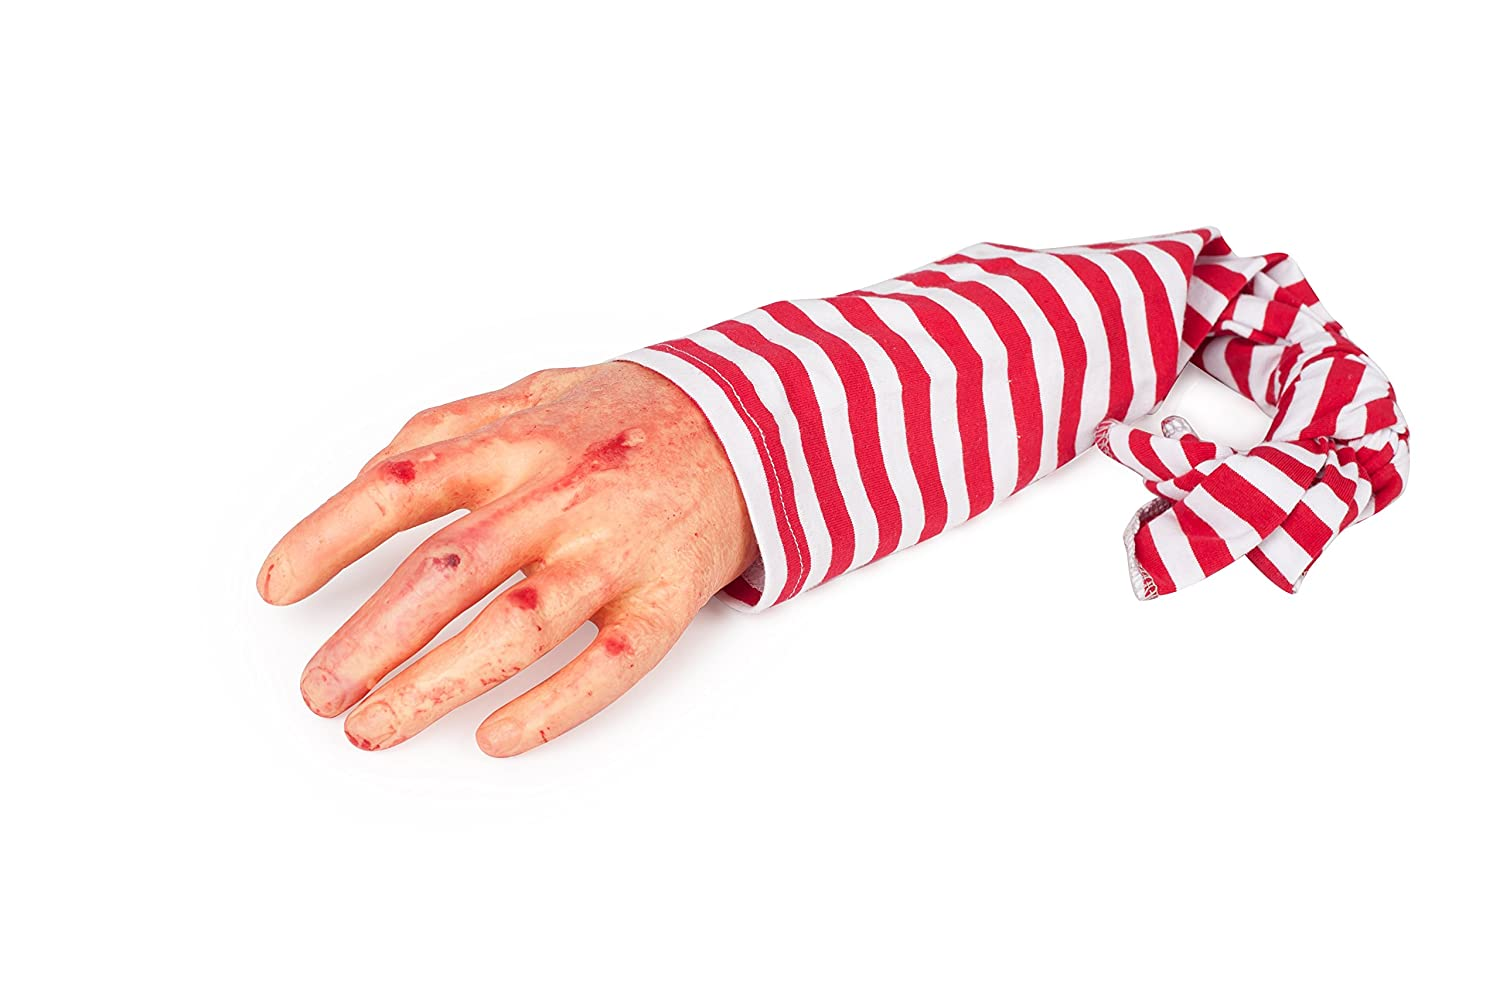 SummitLink Halloween Realistic Fake Hand with Cloth Arm for Car Trunk Dead Body Prank Decoration Prop Novelty Gift Toy